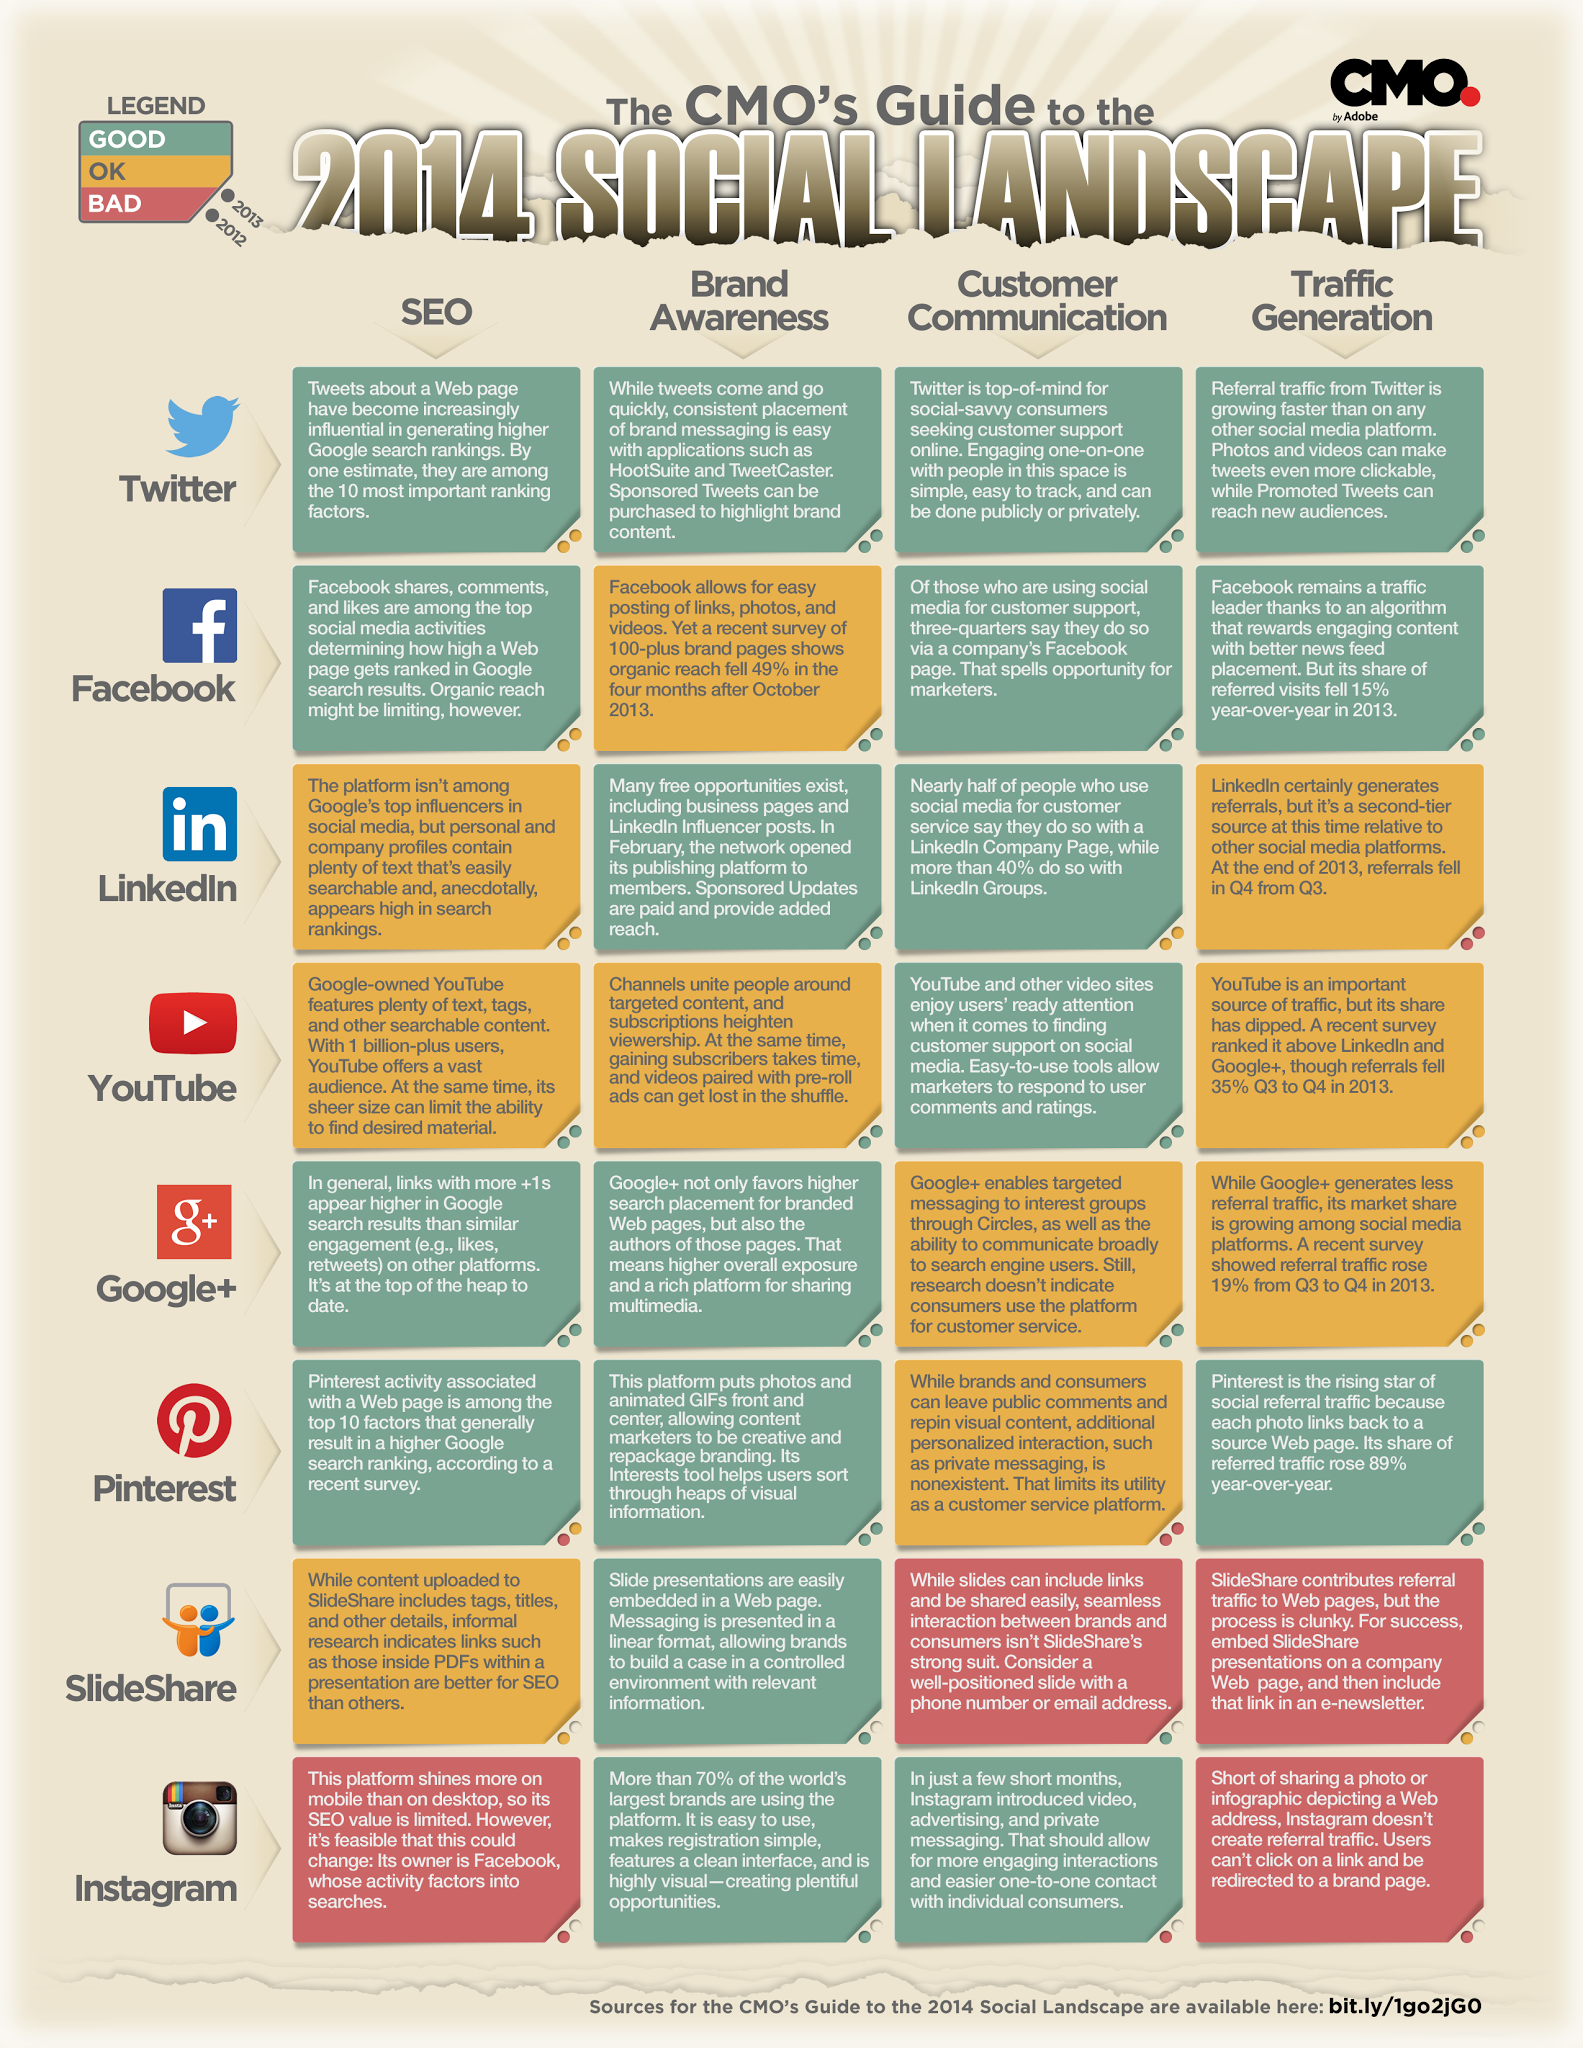 Social-media-landscape-2014-for-CMOs-and-marketing-professionals-infographic